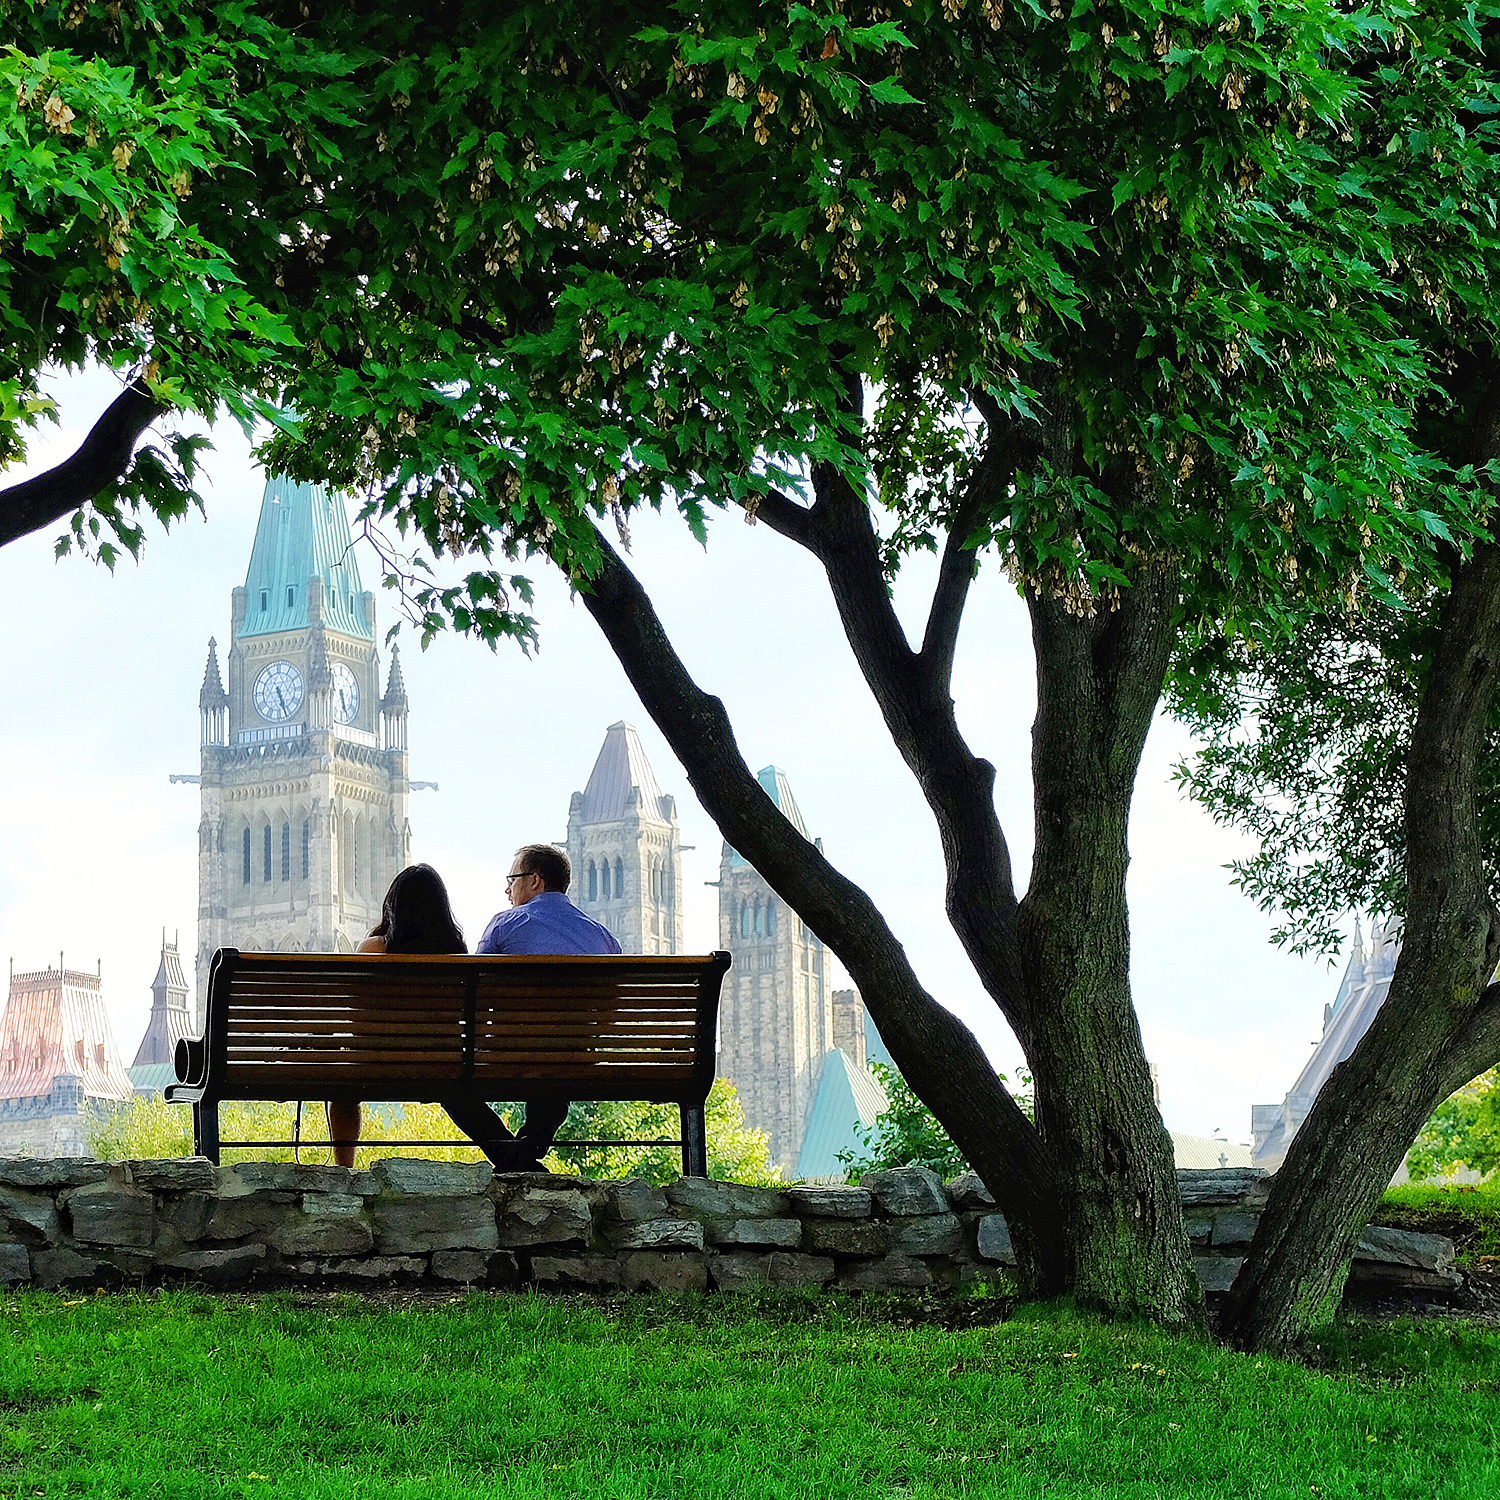 loveOttawa_MajorsHillPark_web.jpg